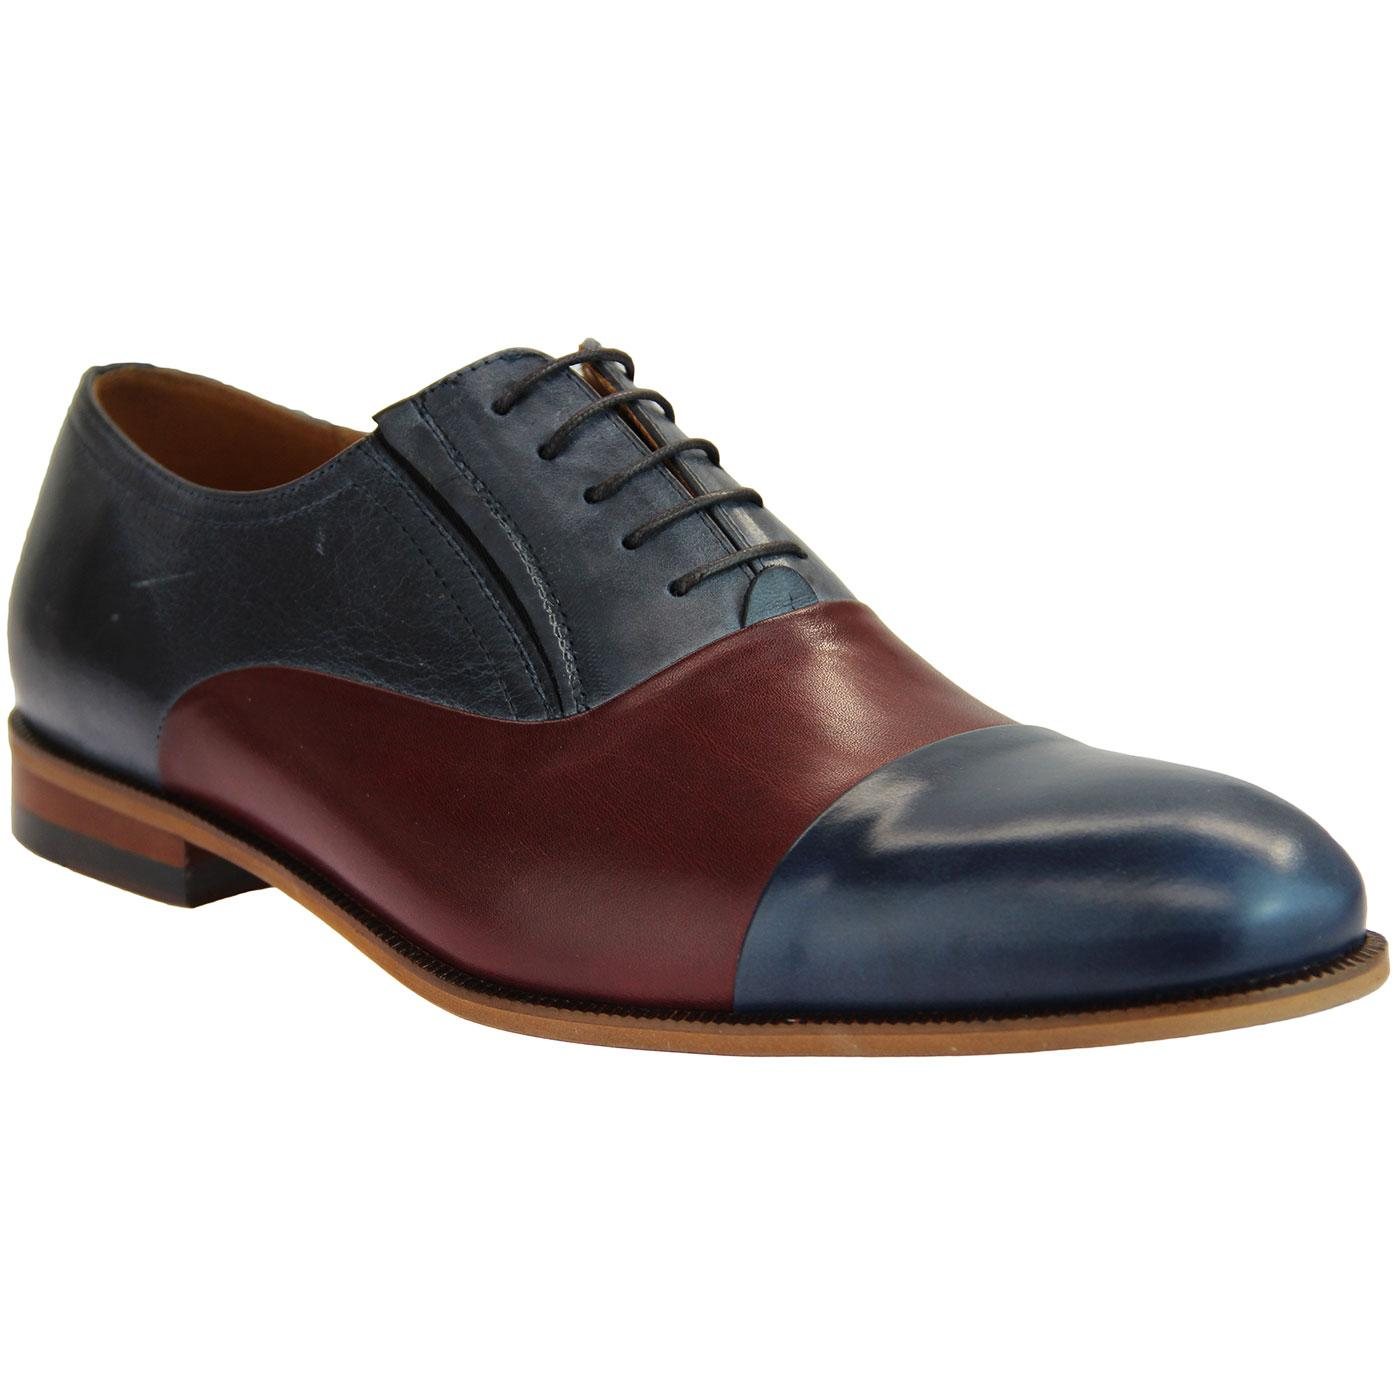 LACUZZO Retro 60s Spatz Style Smart Oxford Shoes